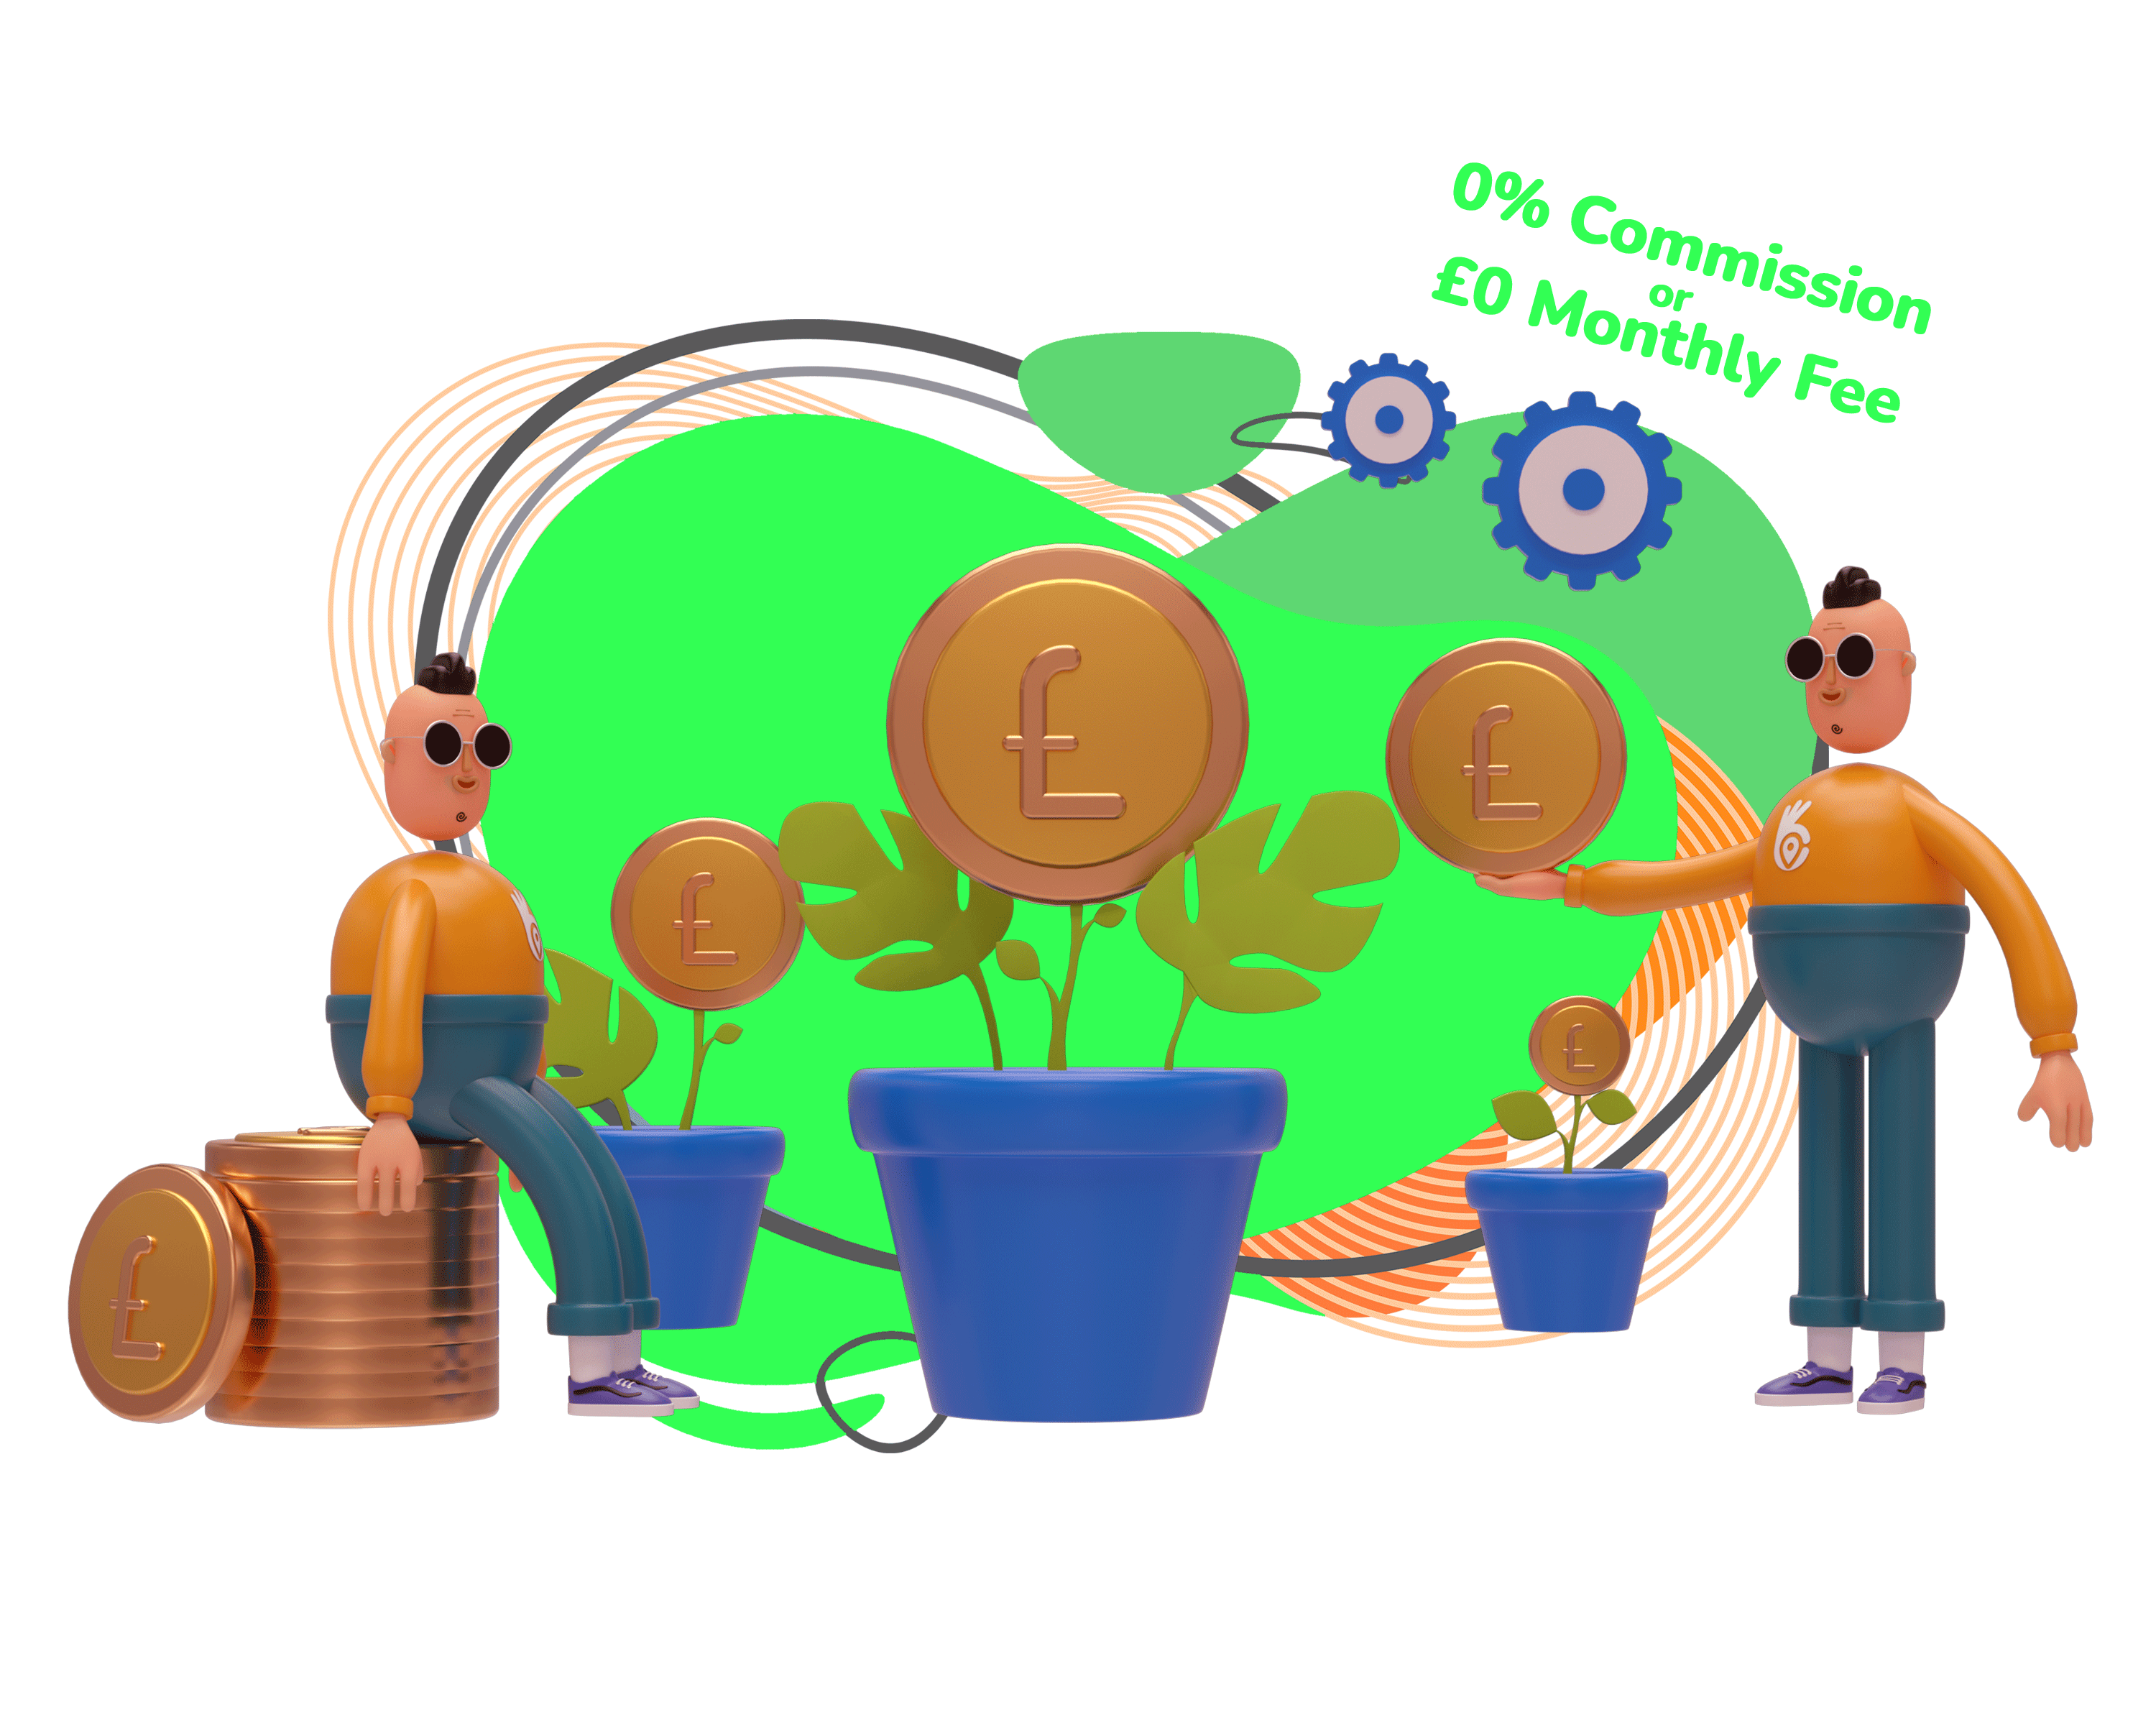 0-commission-or-0-monthly-fee-new